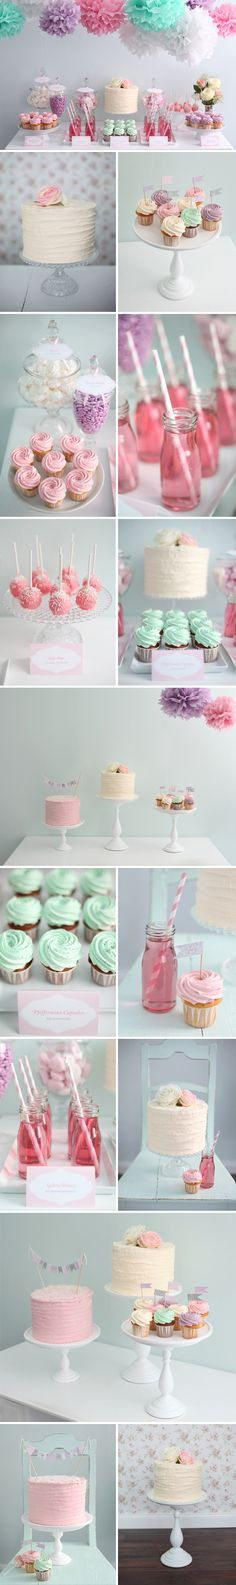 Pretty party idea!